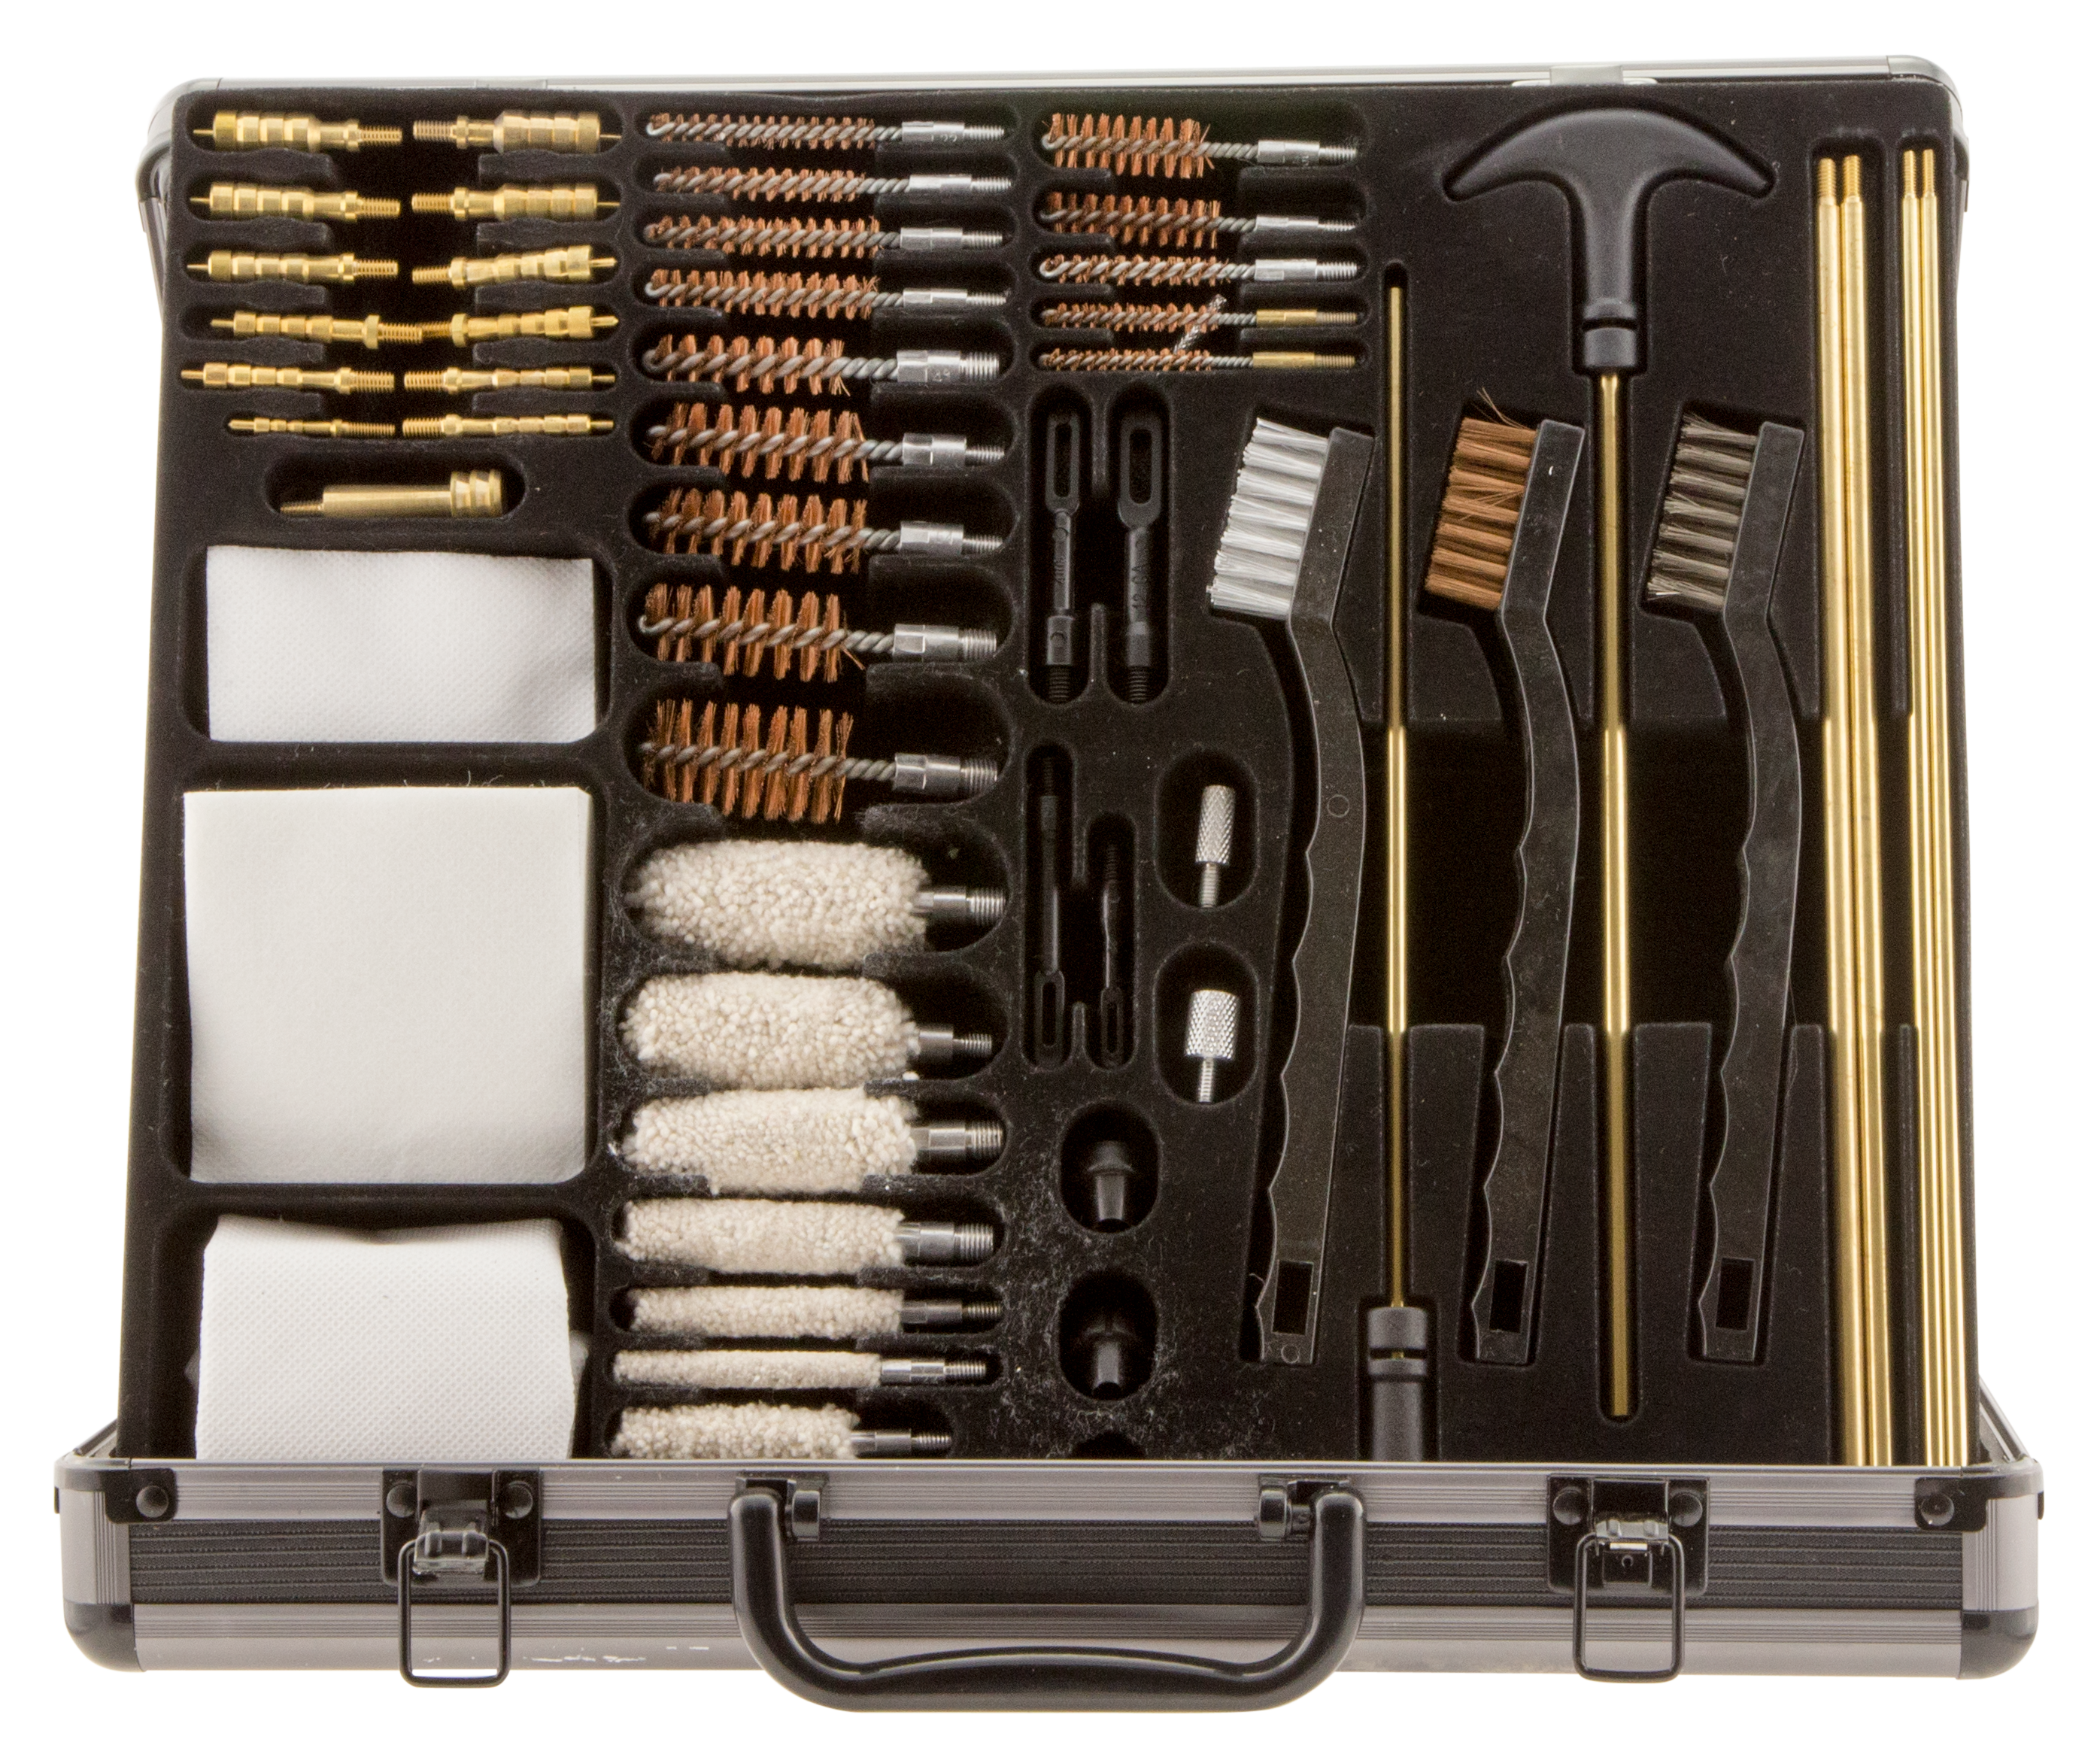 Outers Universal Cleaning Kit - 62 Piece - Aluminum Case